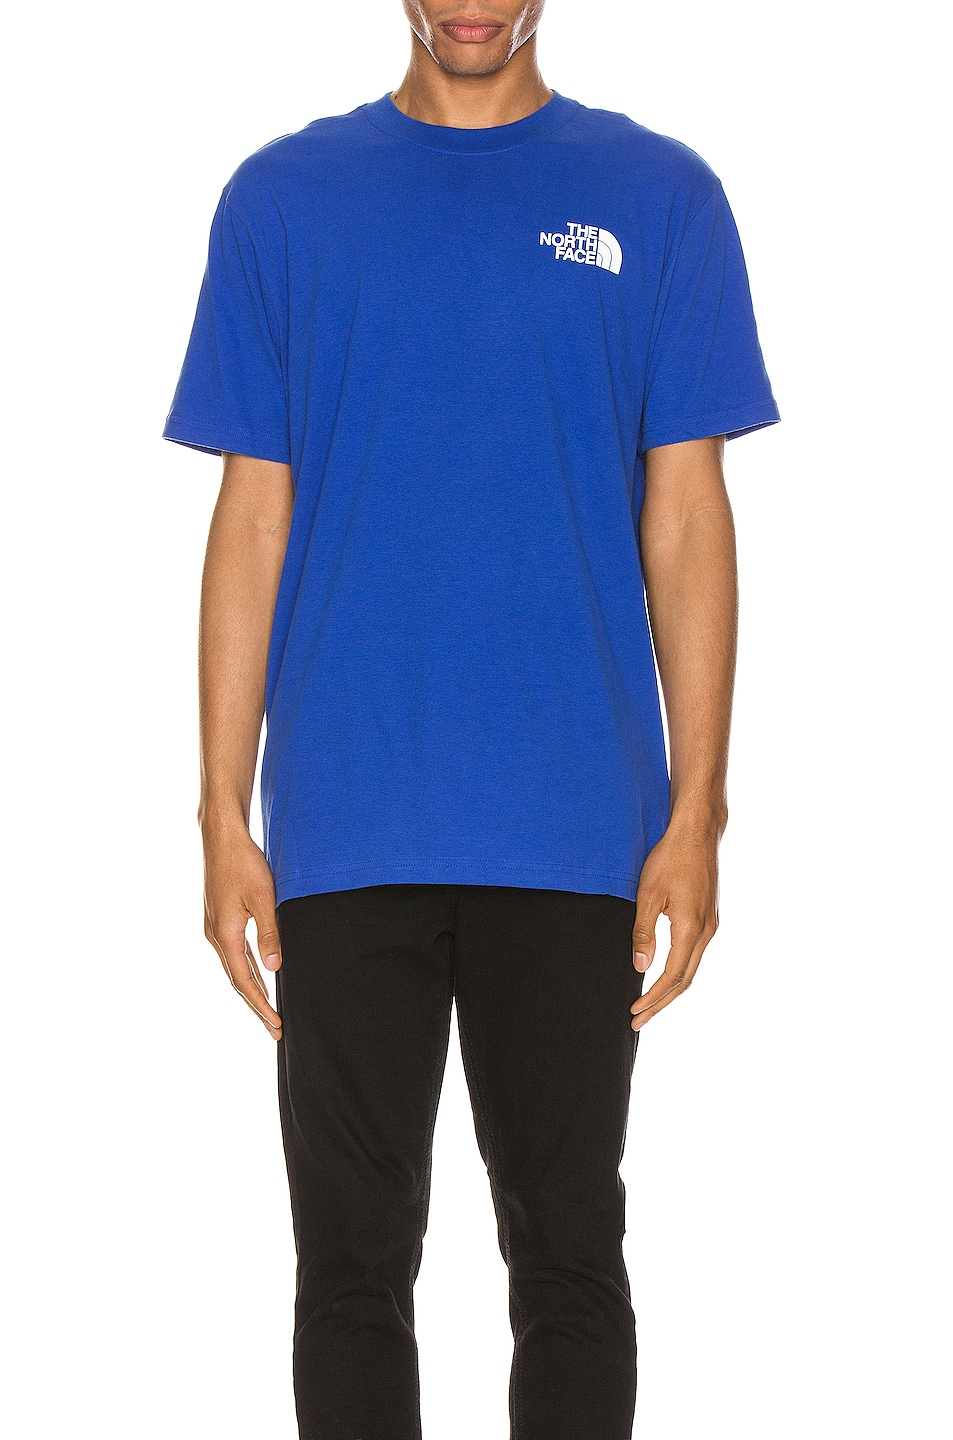 Image 2 of The North Face Red Box Tee in TNF Blue